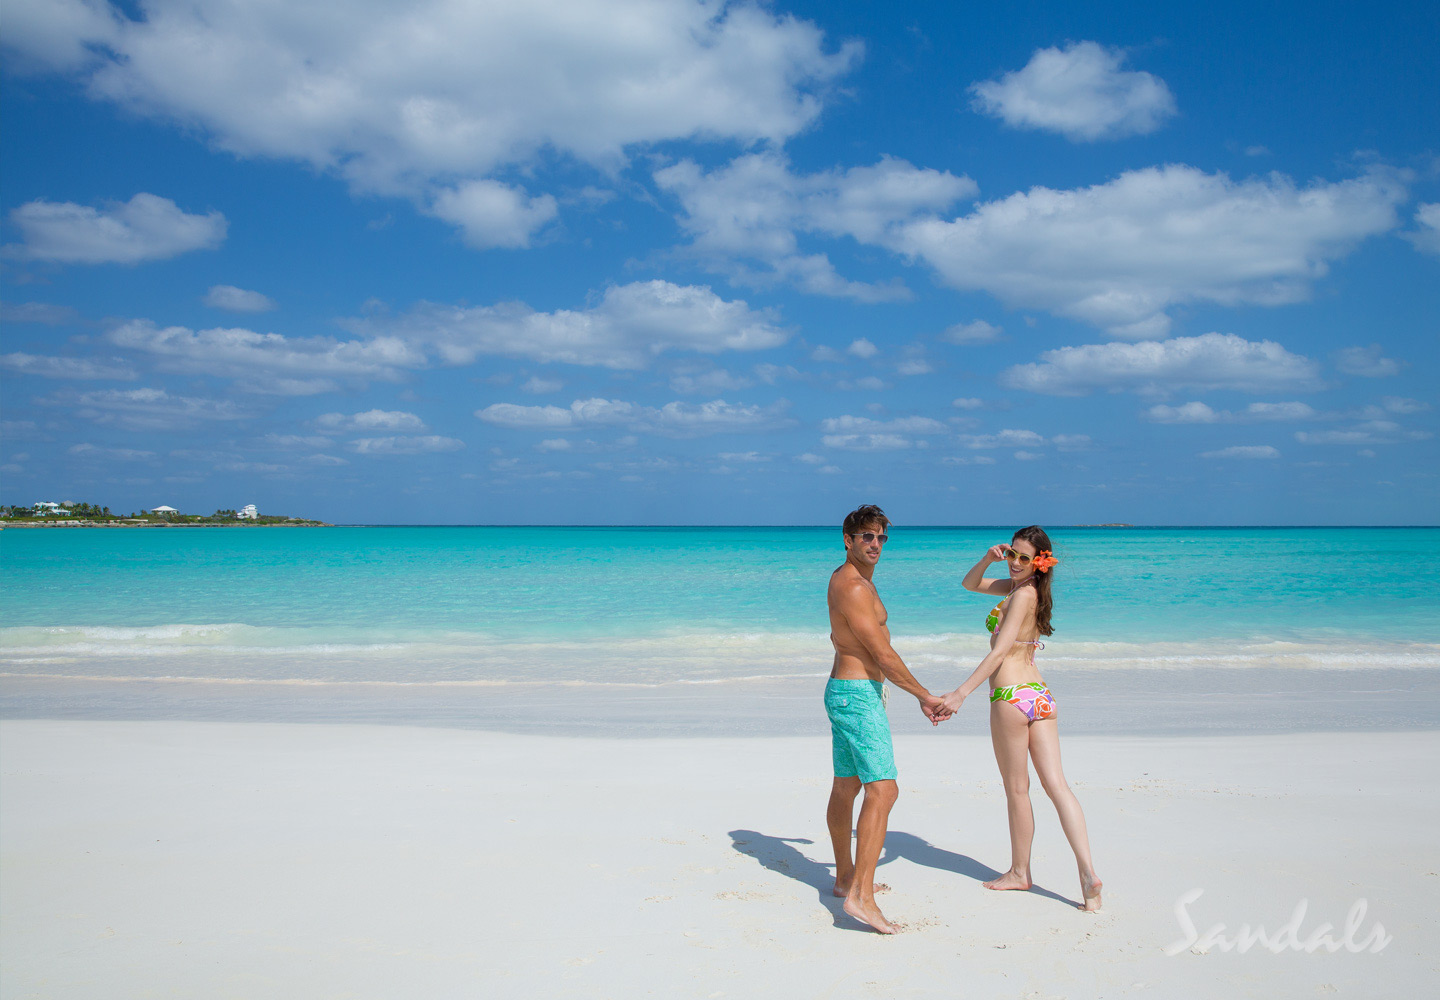 Travel Agency All-Inclusive Resort Sandals Emerald Bay 098